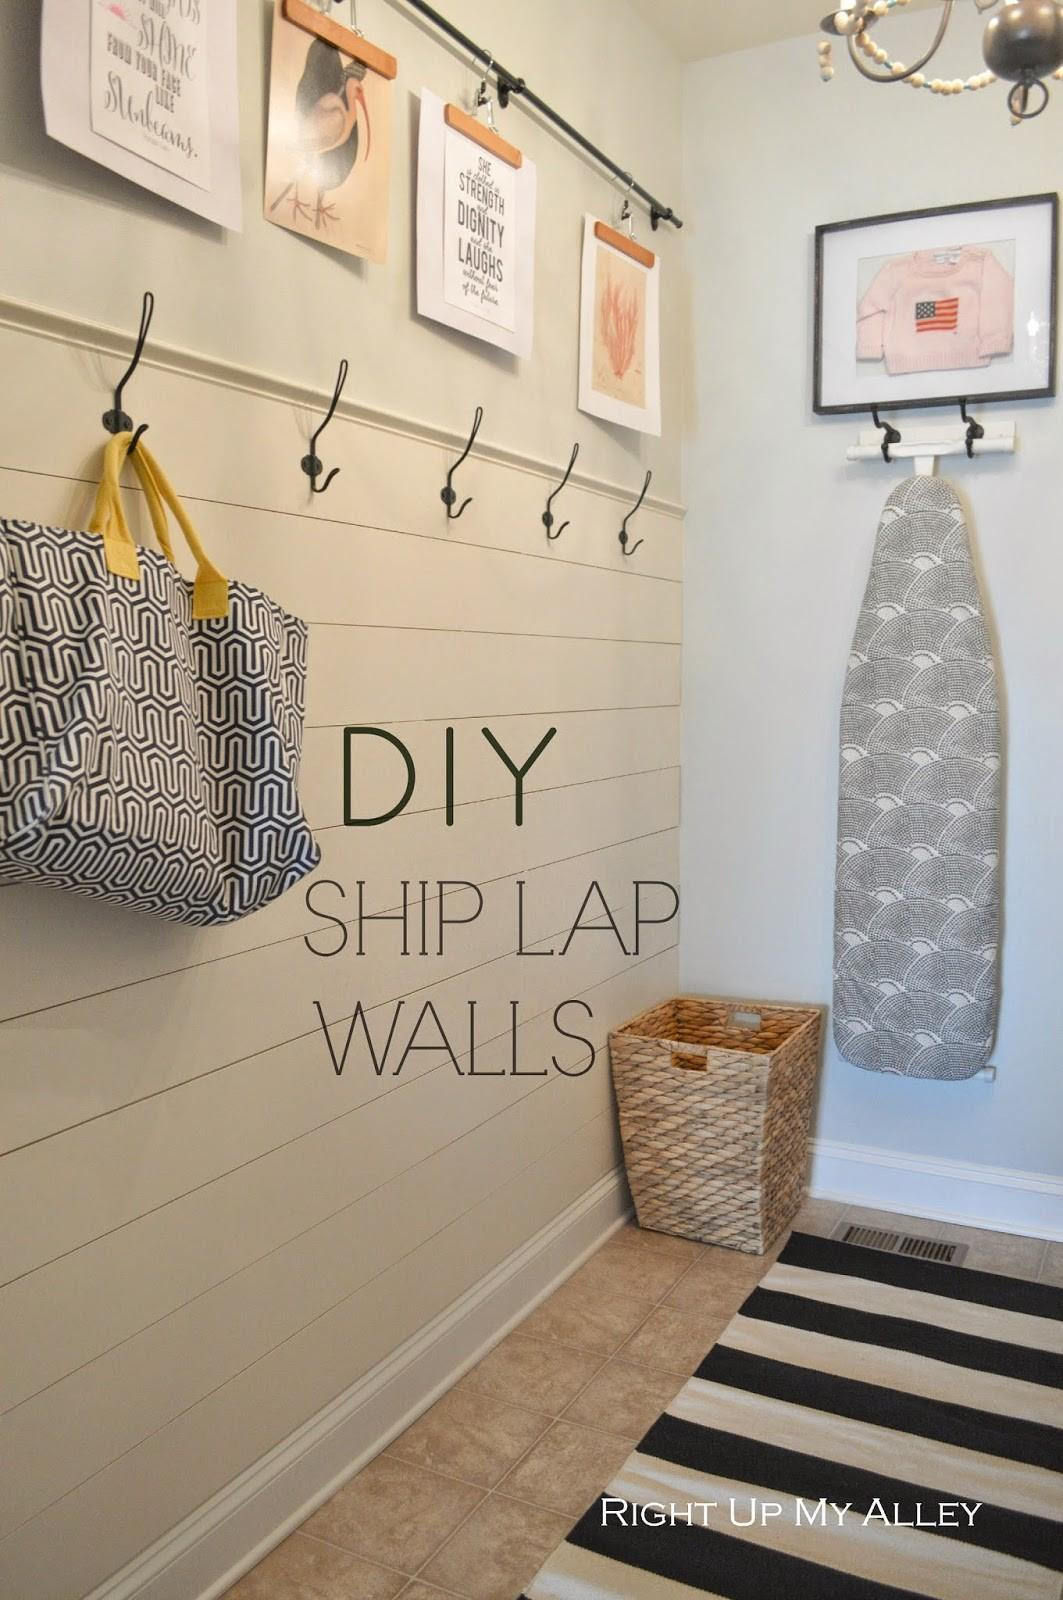 Right Alley Diy Ship Lap Wall